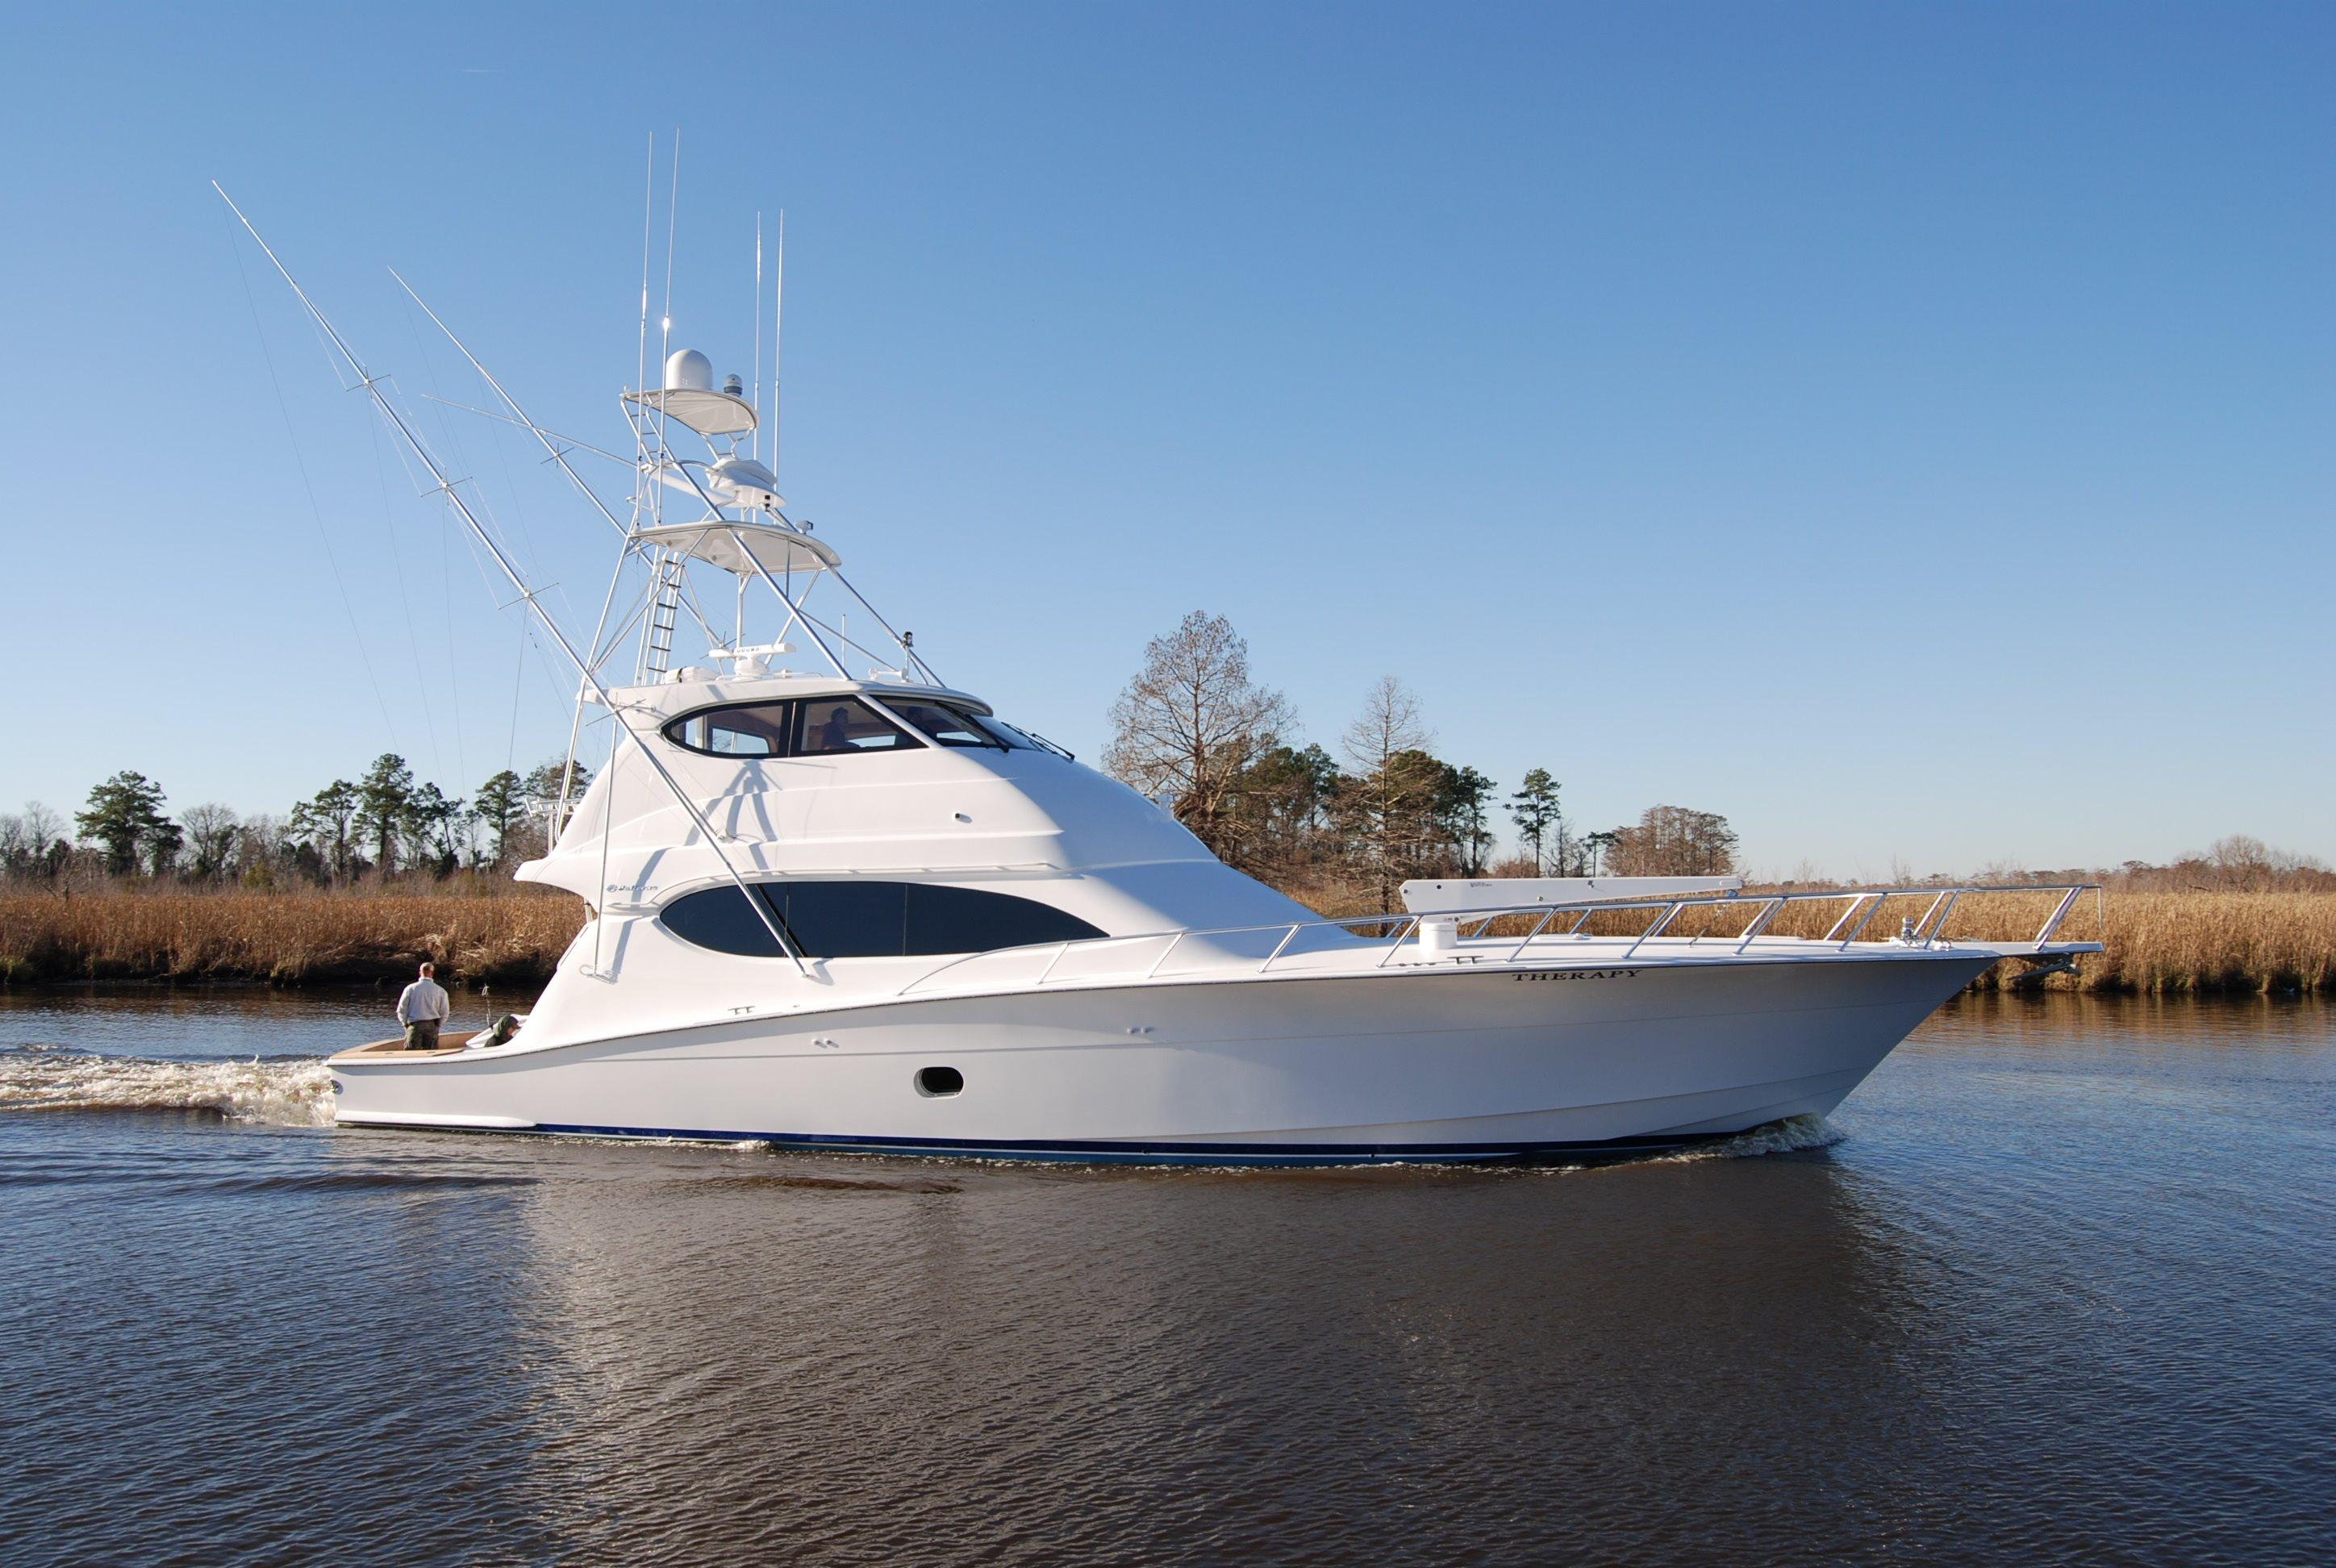 Used hatteras yachts for sale from 60 to 70 feet for Hatteras fishing boat